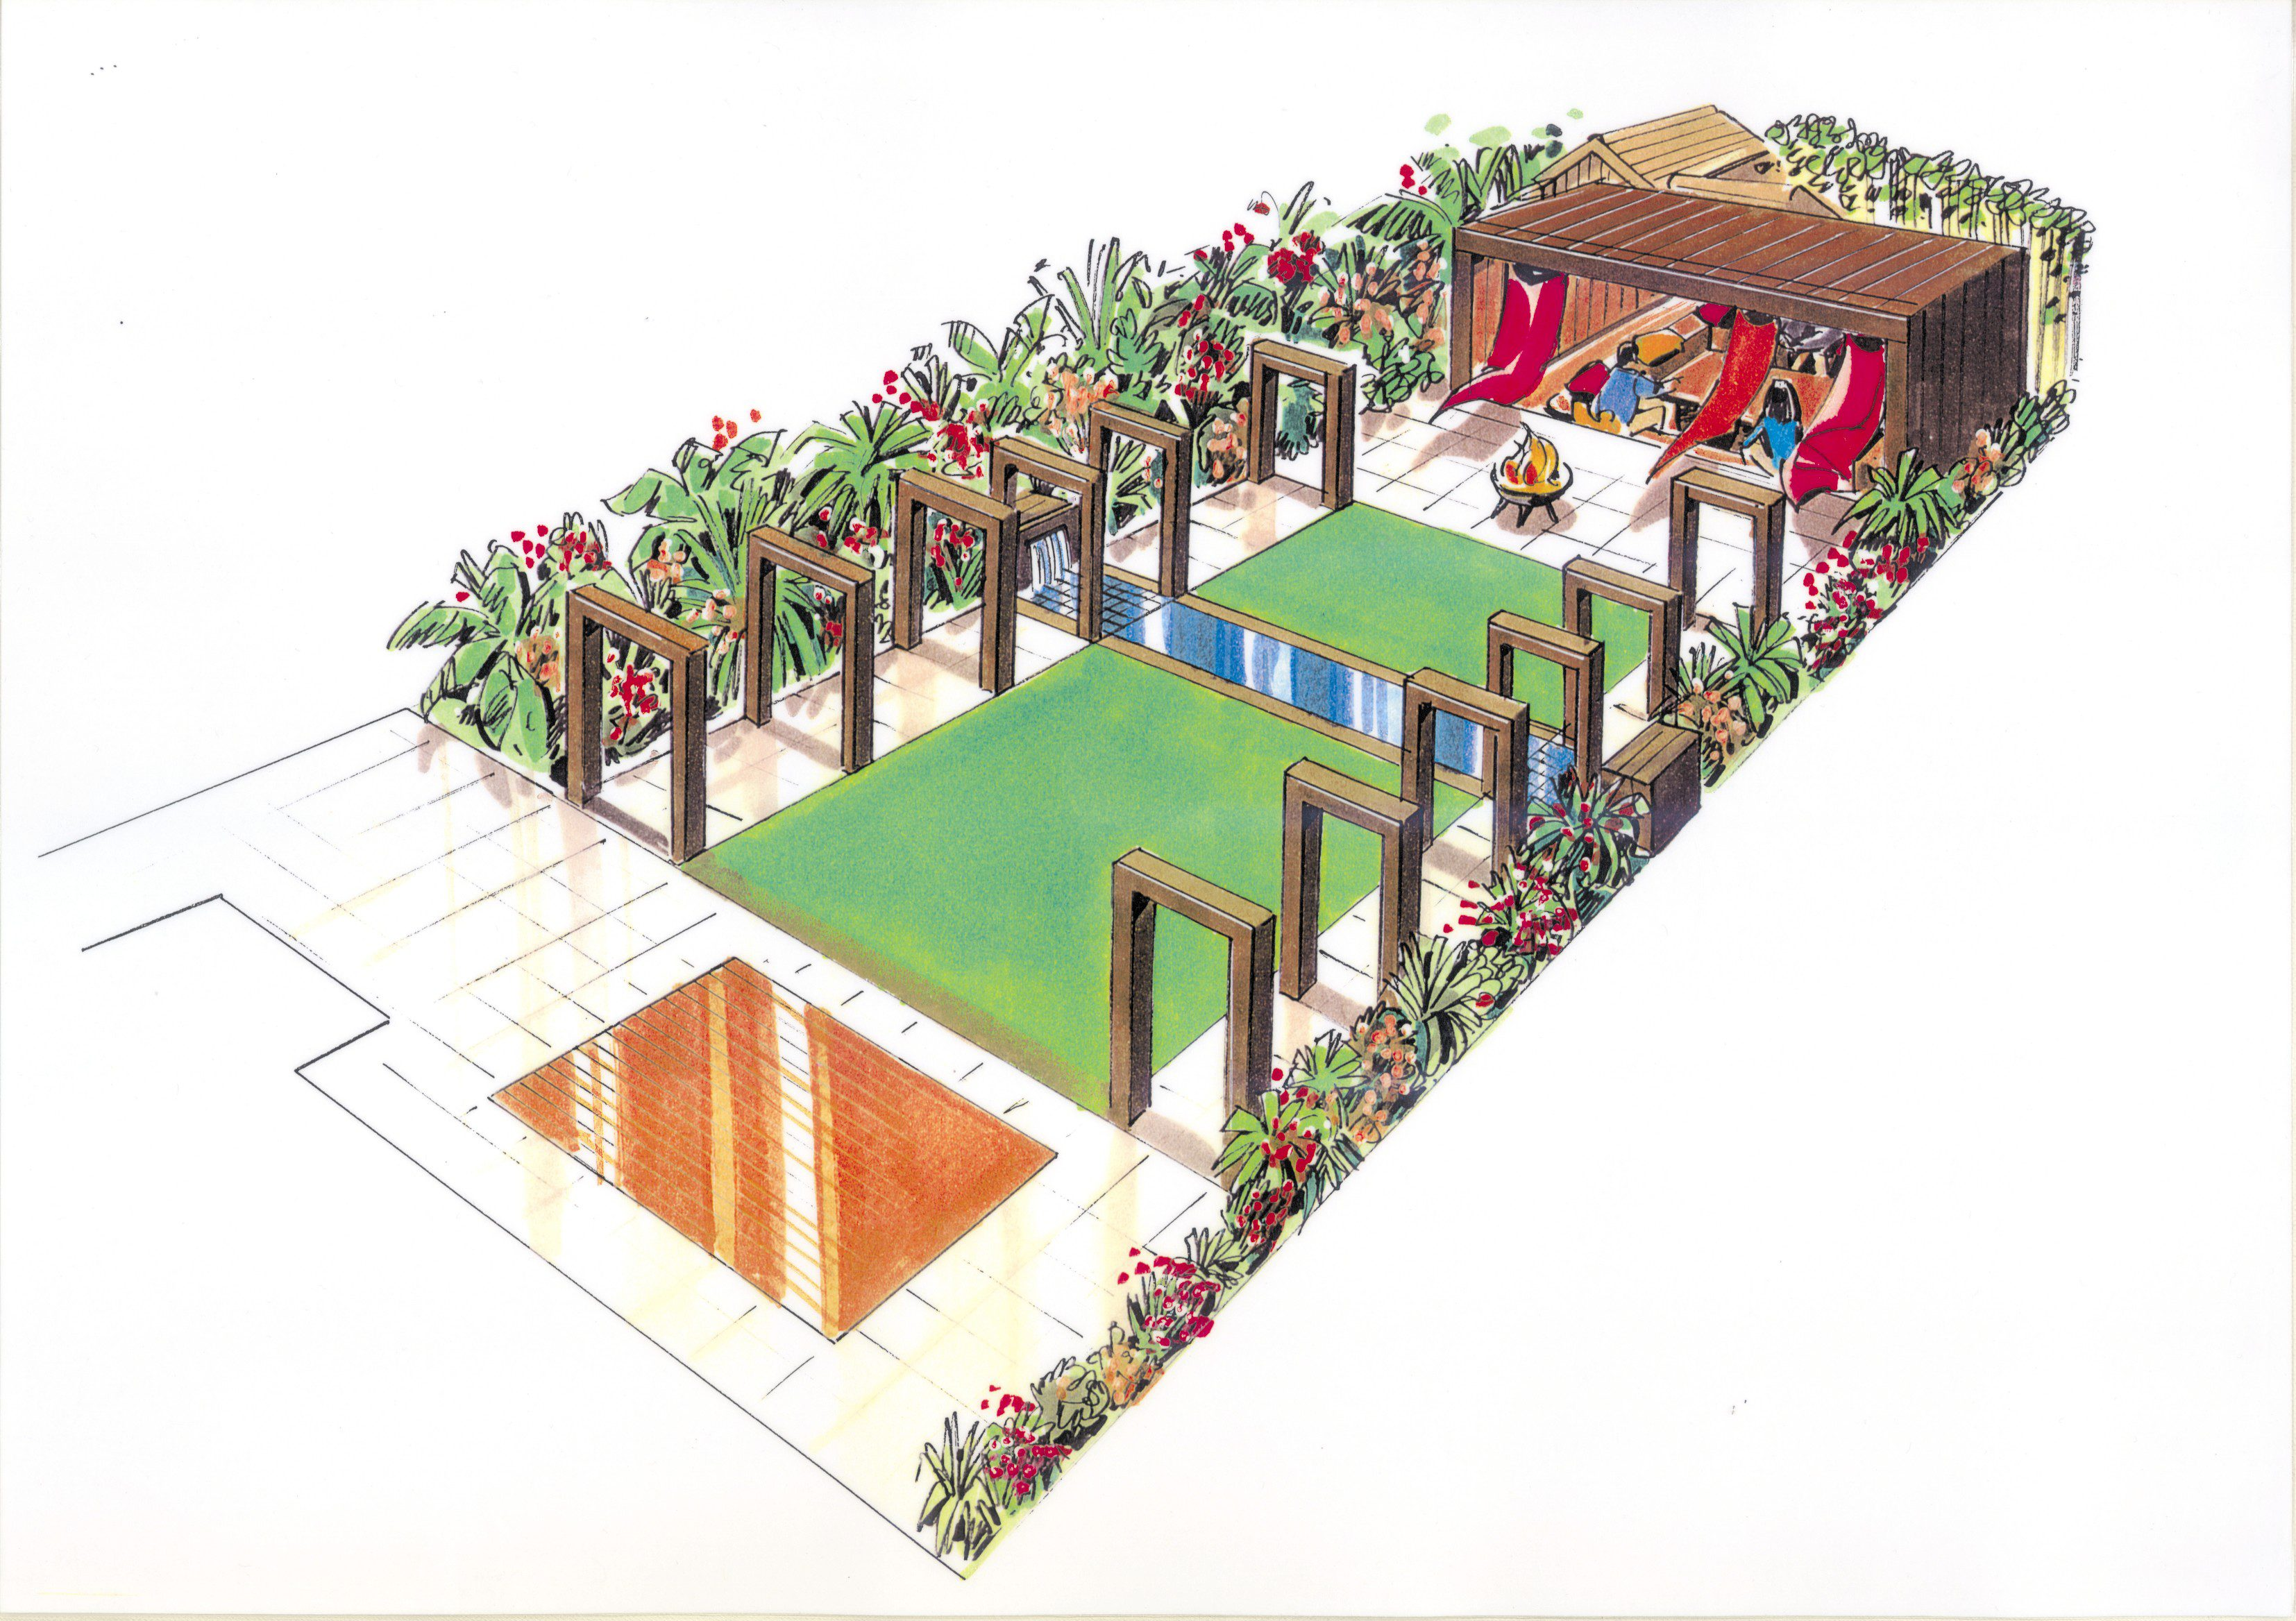 North london garden design garden of the month march 2010 for Children friendly garden designs